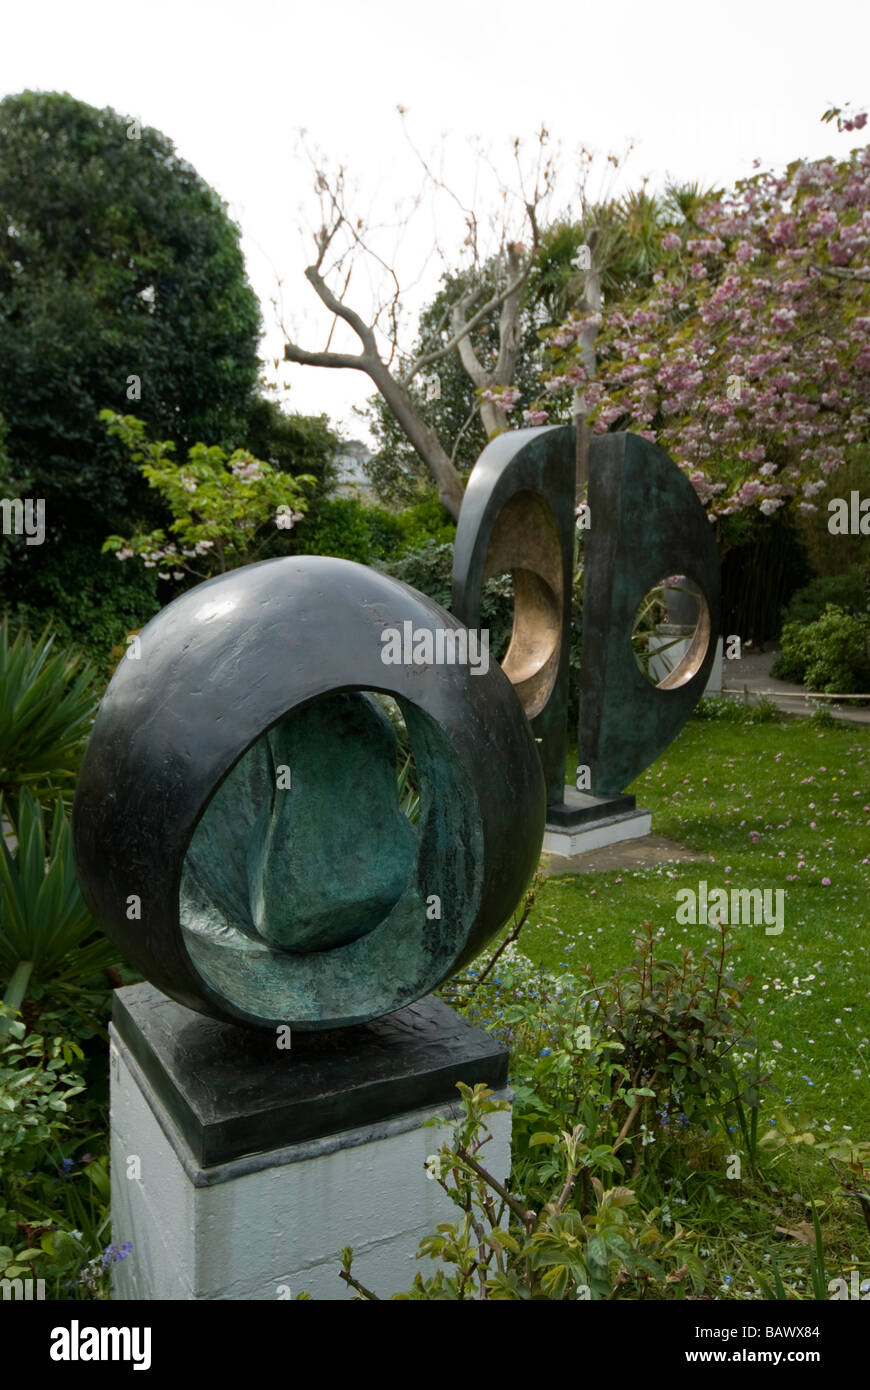 Barbara Hepworth Sculpture Garden - Stock Image